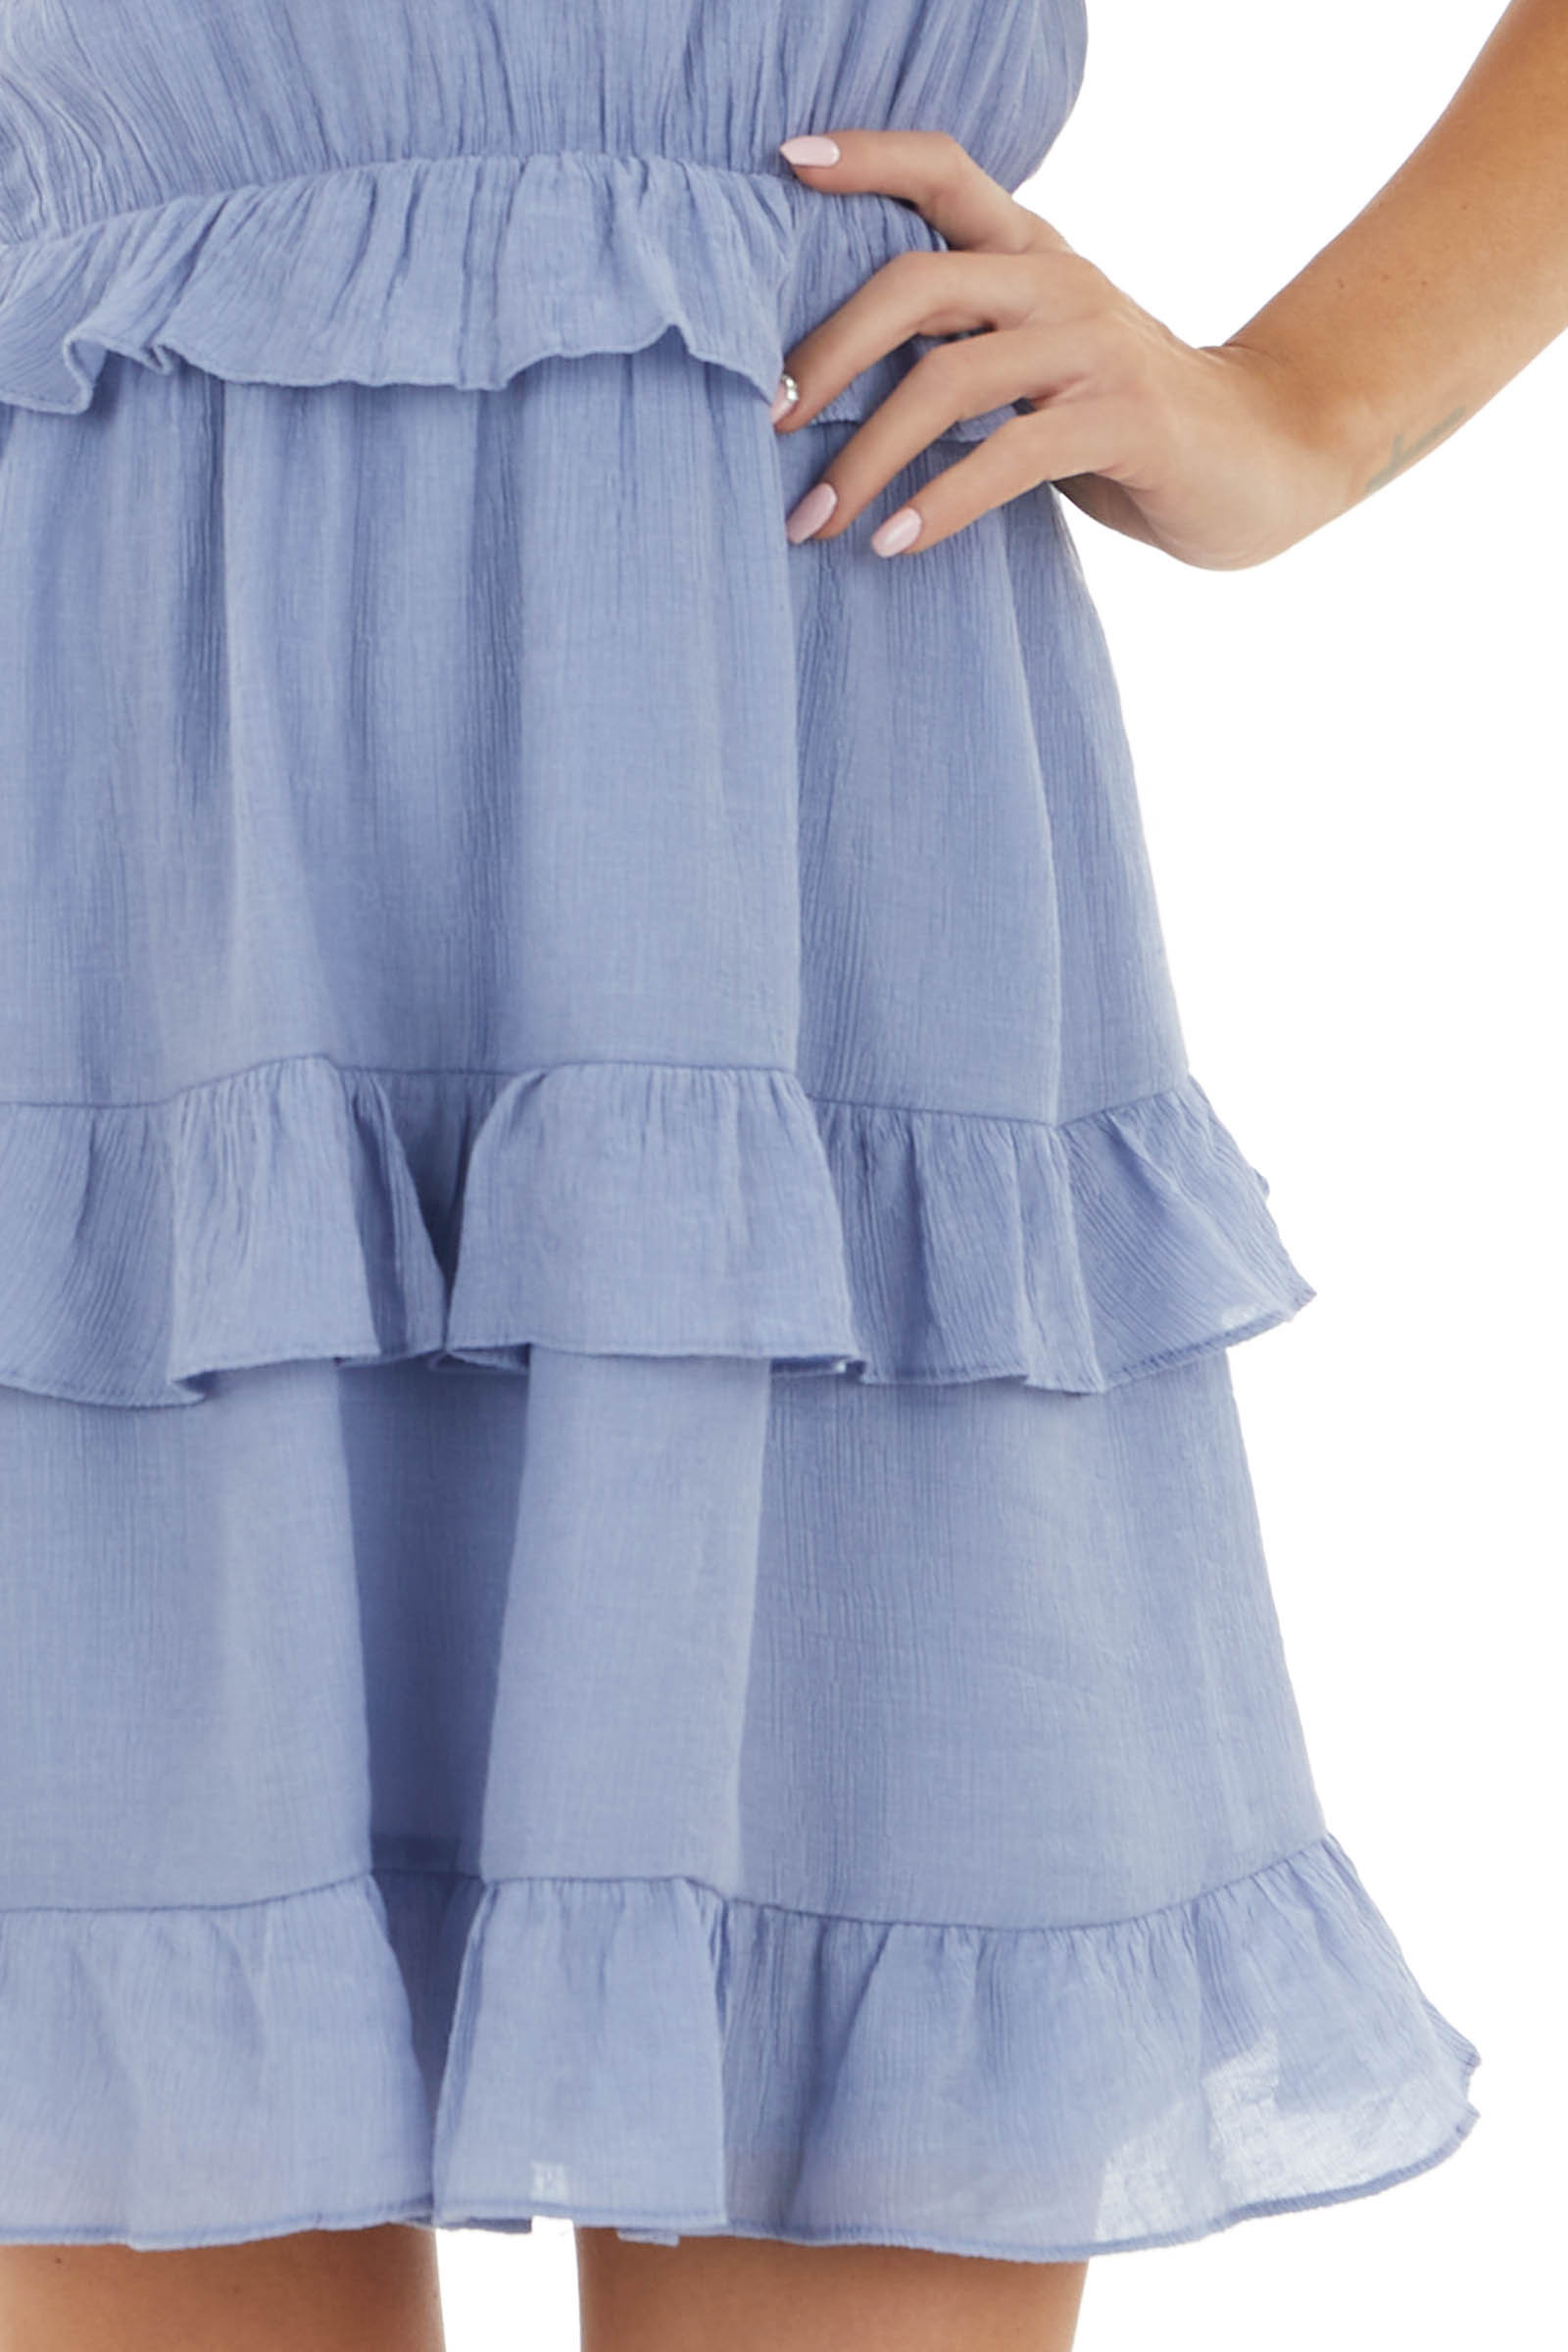 Periwinkle Crinkle Woven Ruffle Dress with Halter Neckline